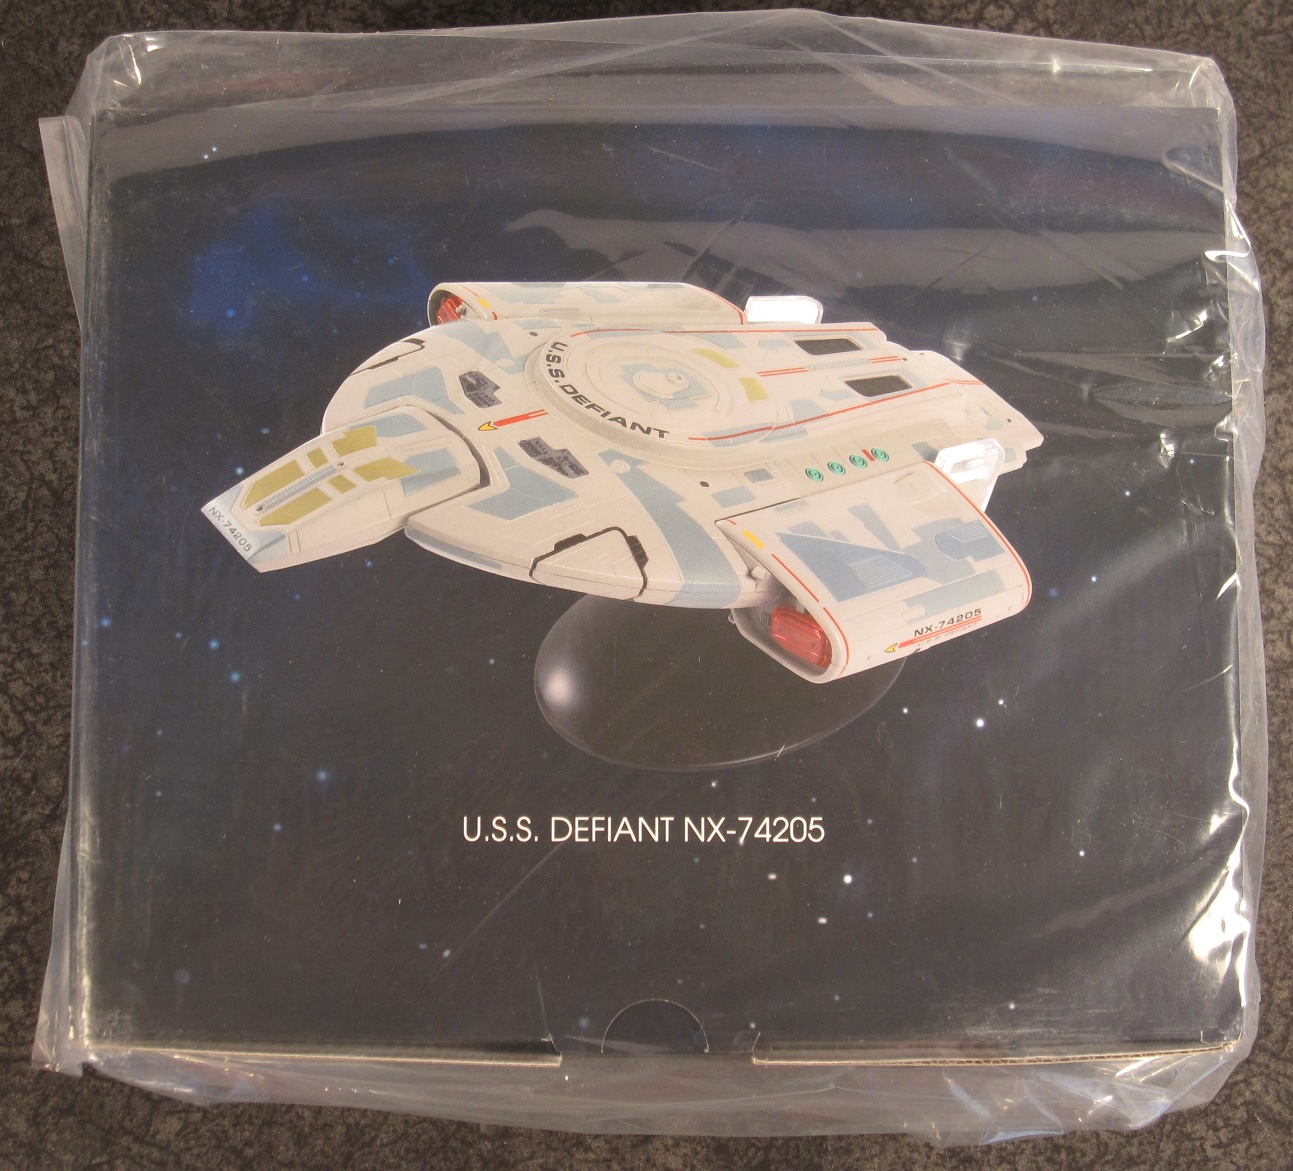 Defiant NX-74205 with Collector Magazine #23 Star Trek Starships Special U.S.S